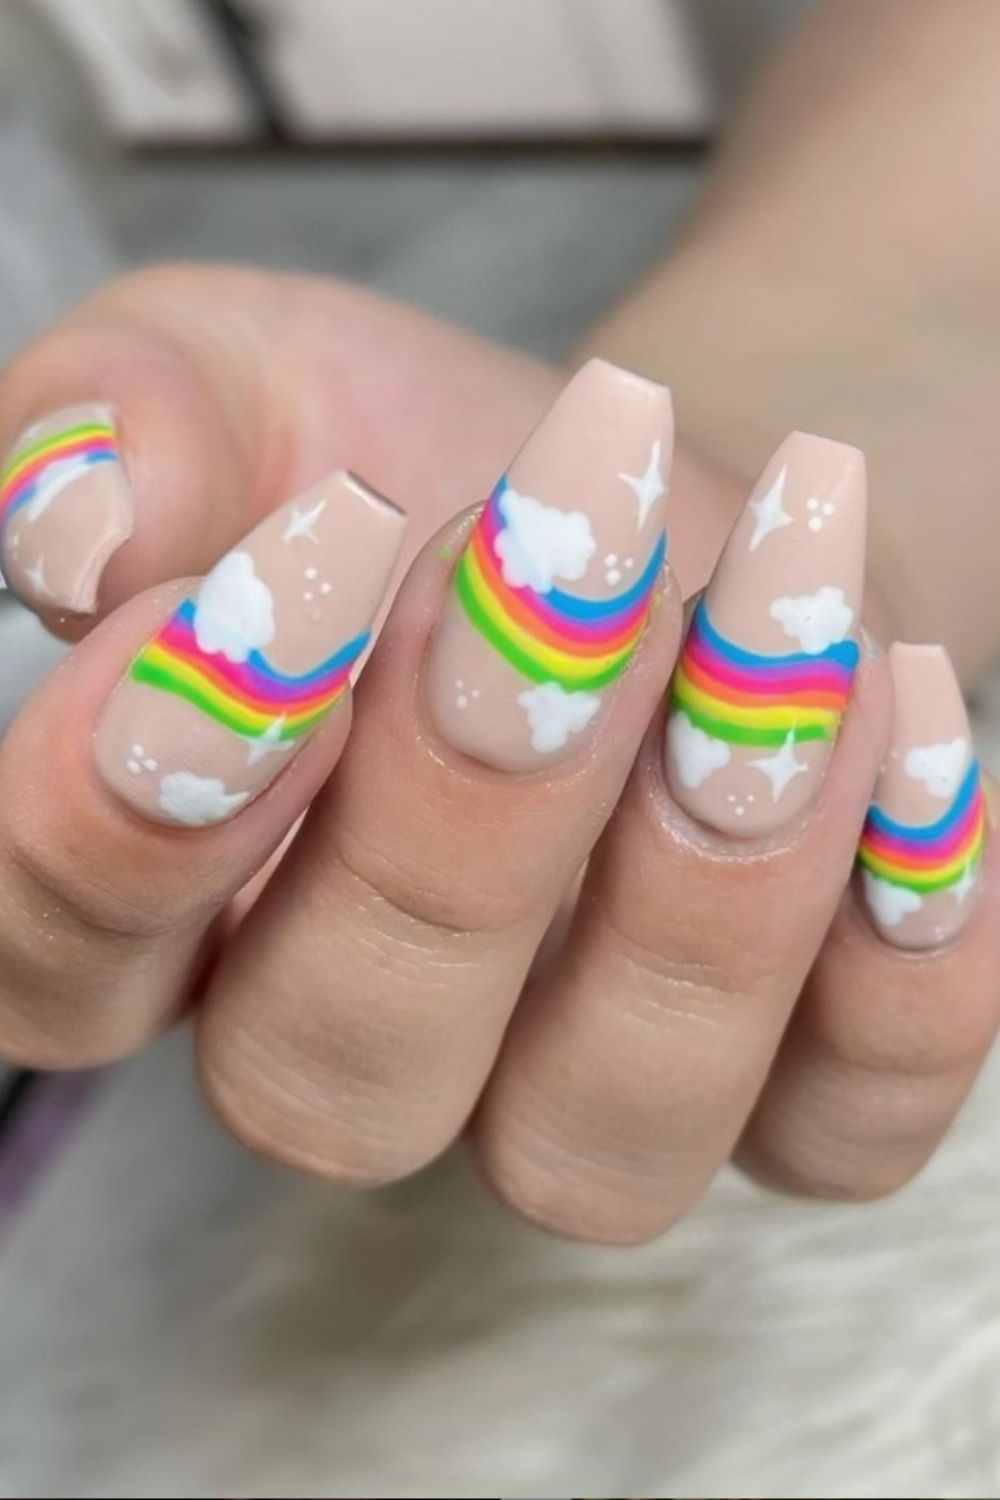 Coffin nail design with rainbow and white clouds